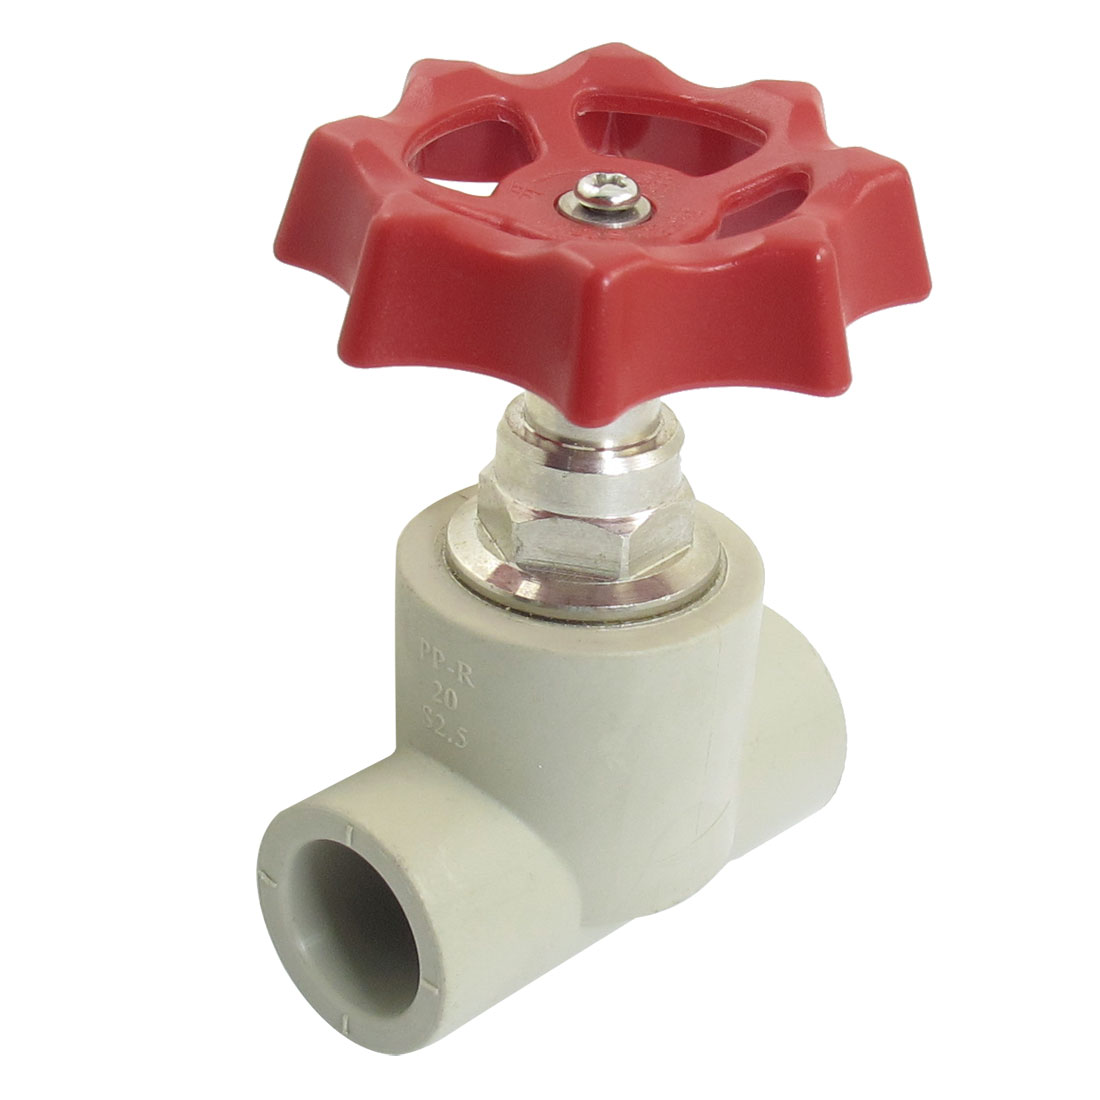 Red Rotary Knob 20mm x 20mm Hole Stop Water PPR Gate Valve